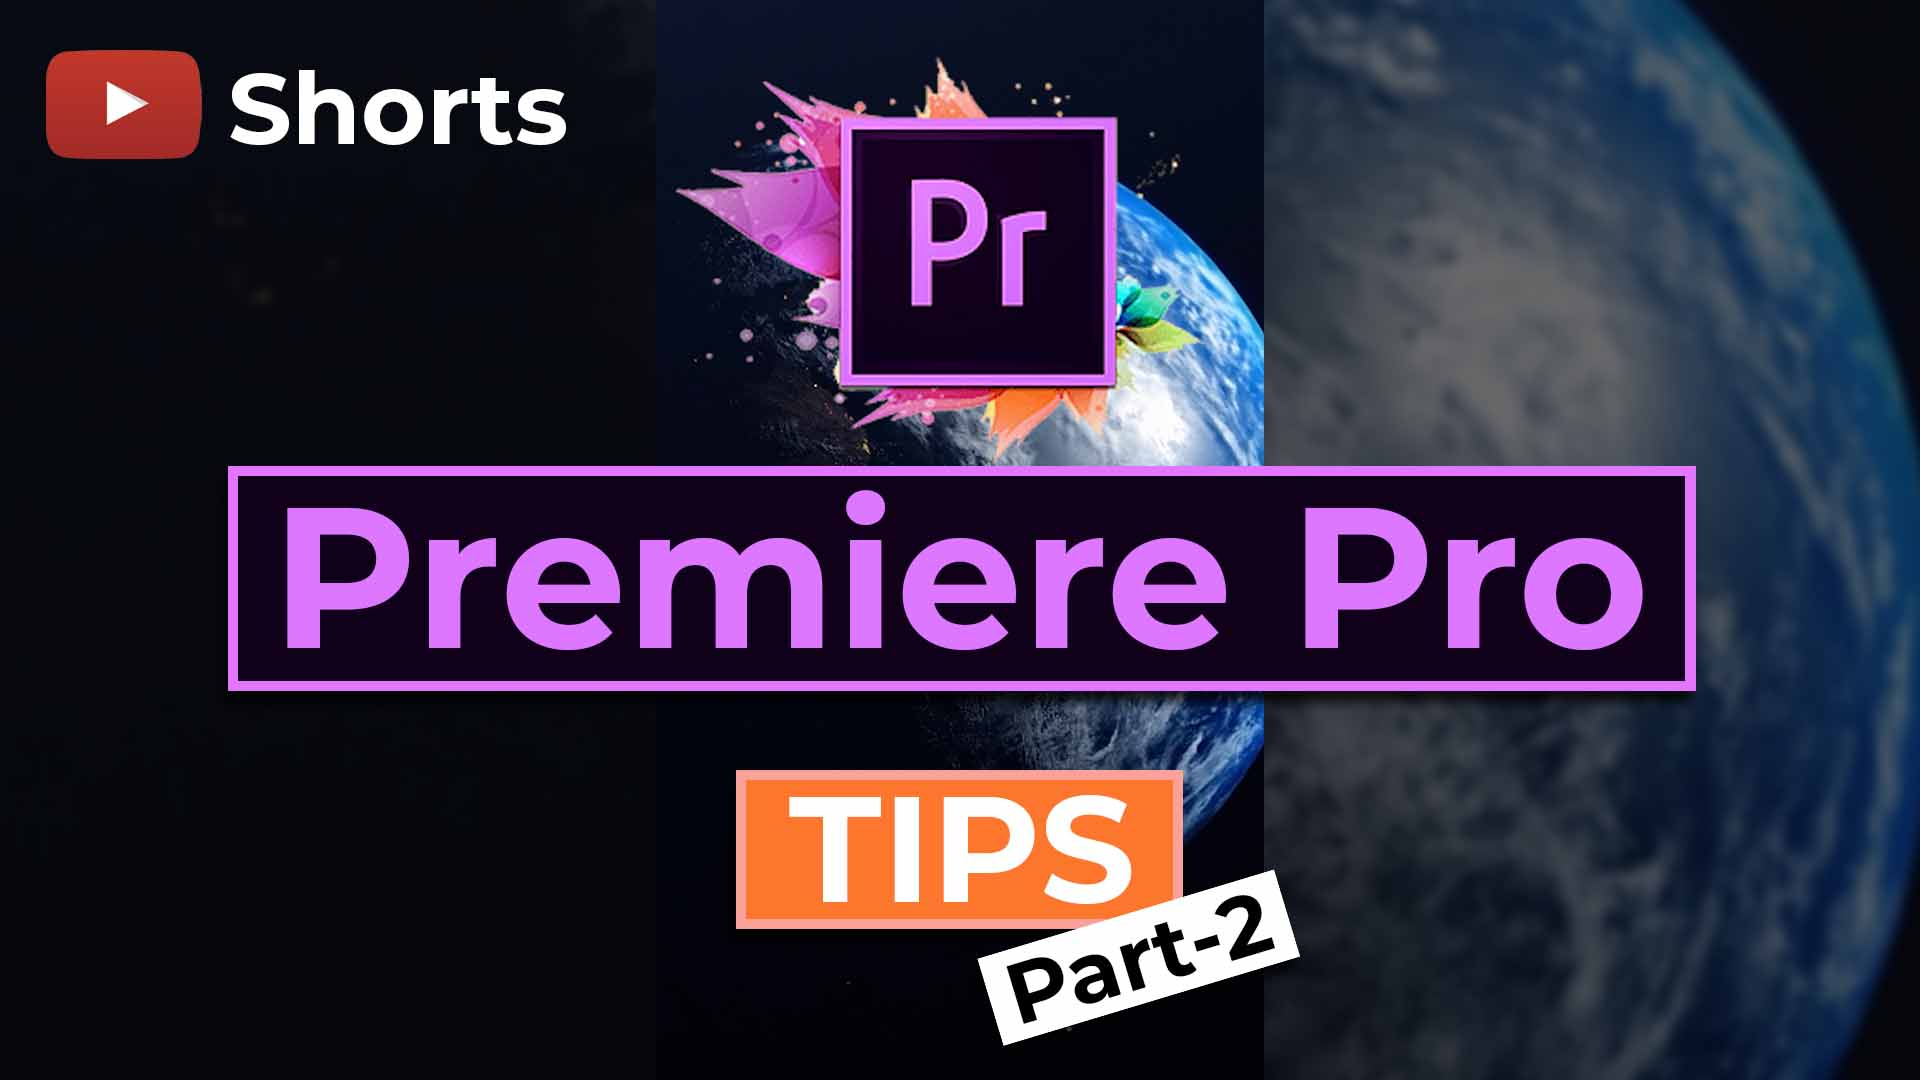 Premiere Pro Tips - ALL SHORTS - Part 2